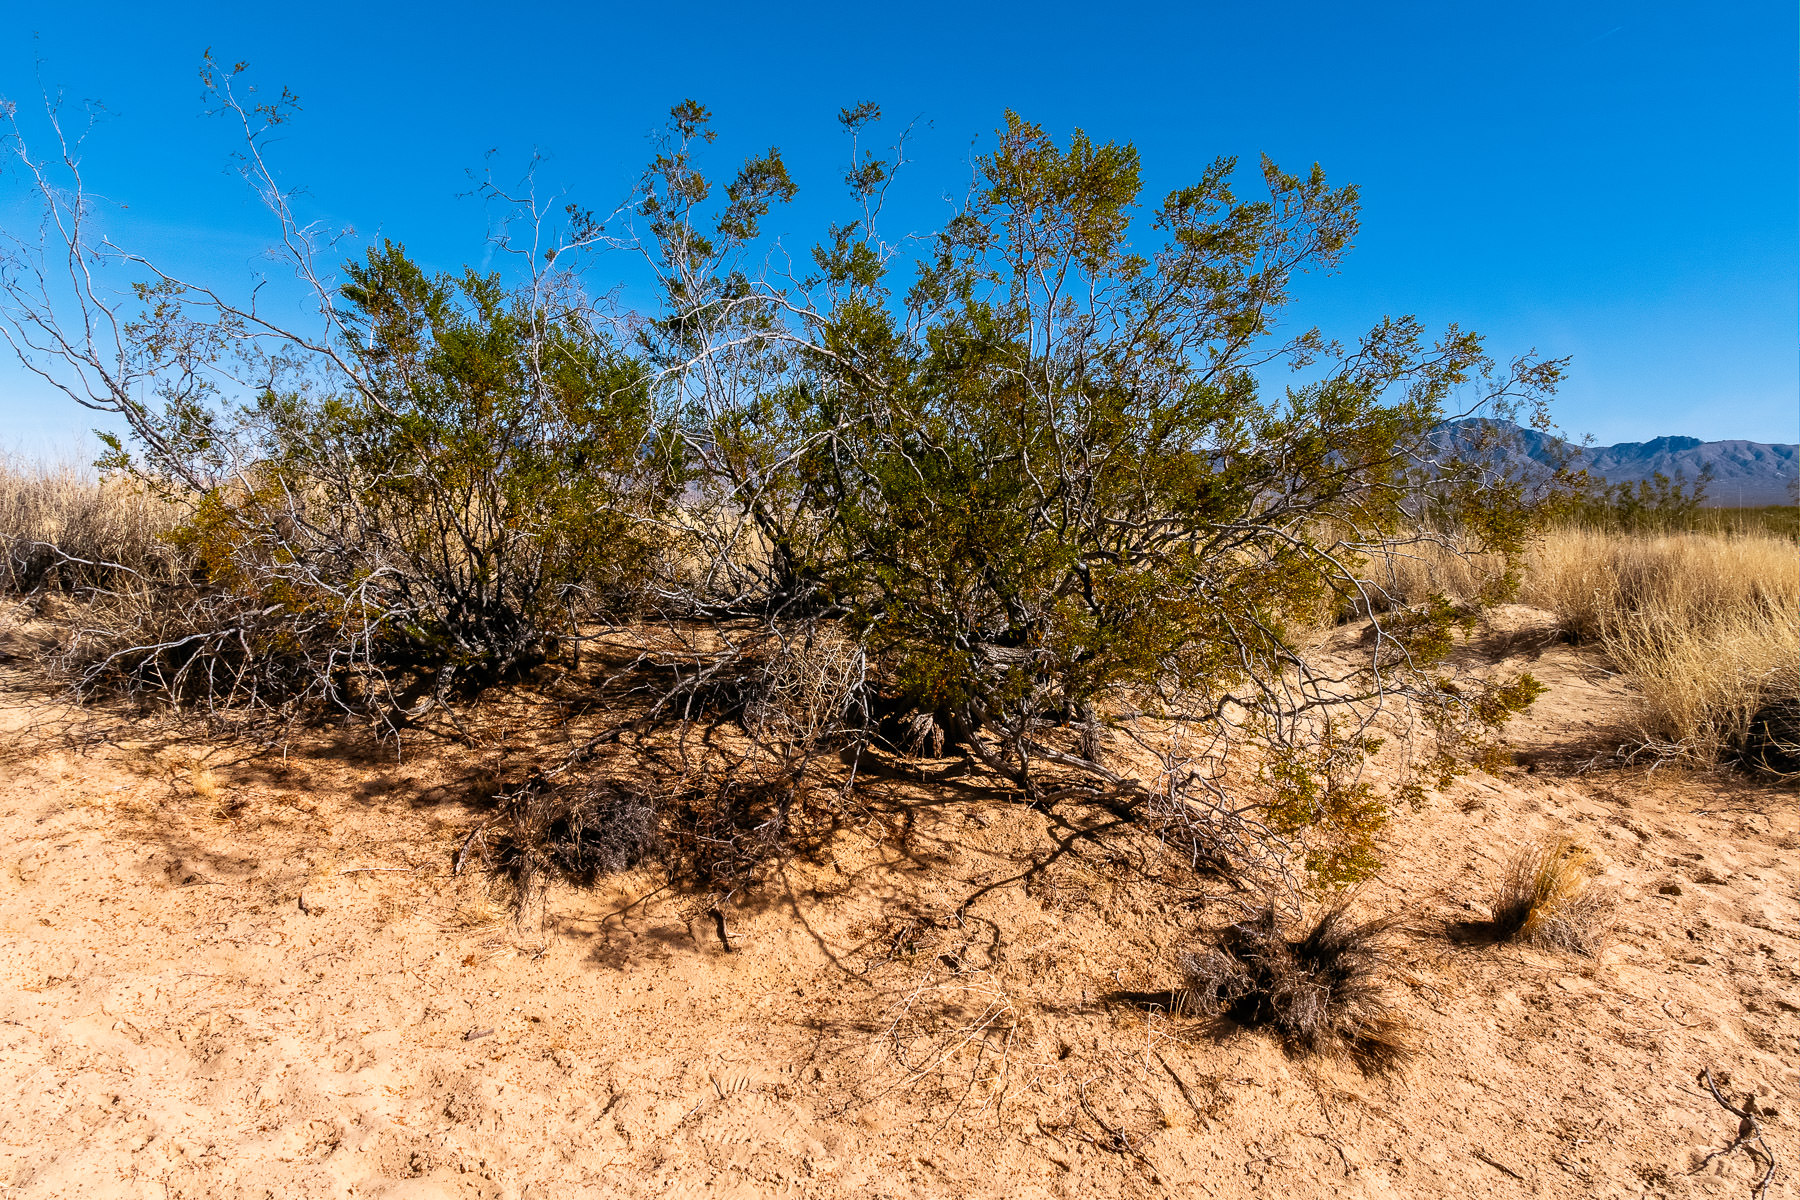 Desert brush spotted at California's Mojave National Preserve.